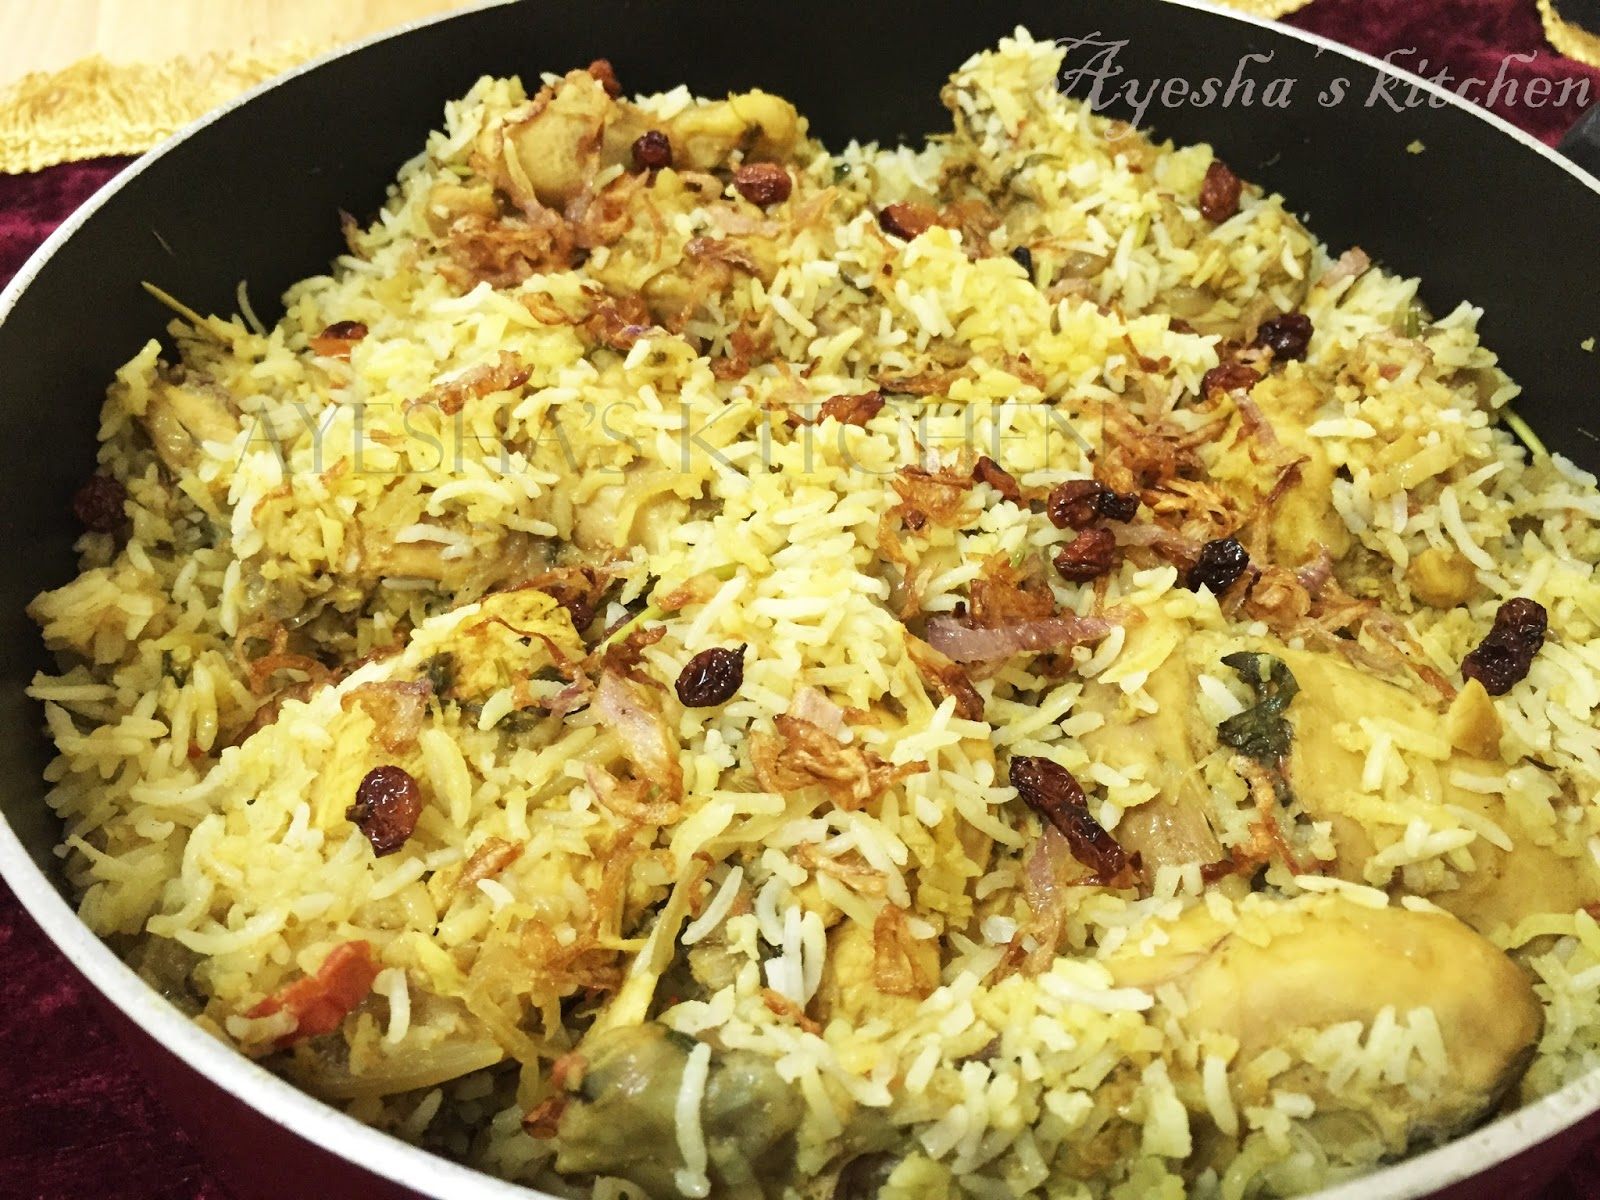 Make malabar dum biryani and know its recipes chicken biryani recipe malar biryani or kerala biryani perfect holiday cooking recipe rice dishes easy and forumfinder Gallery